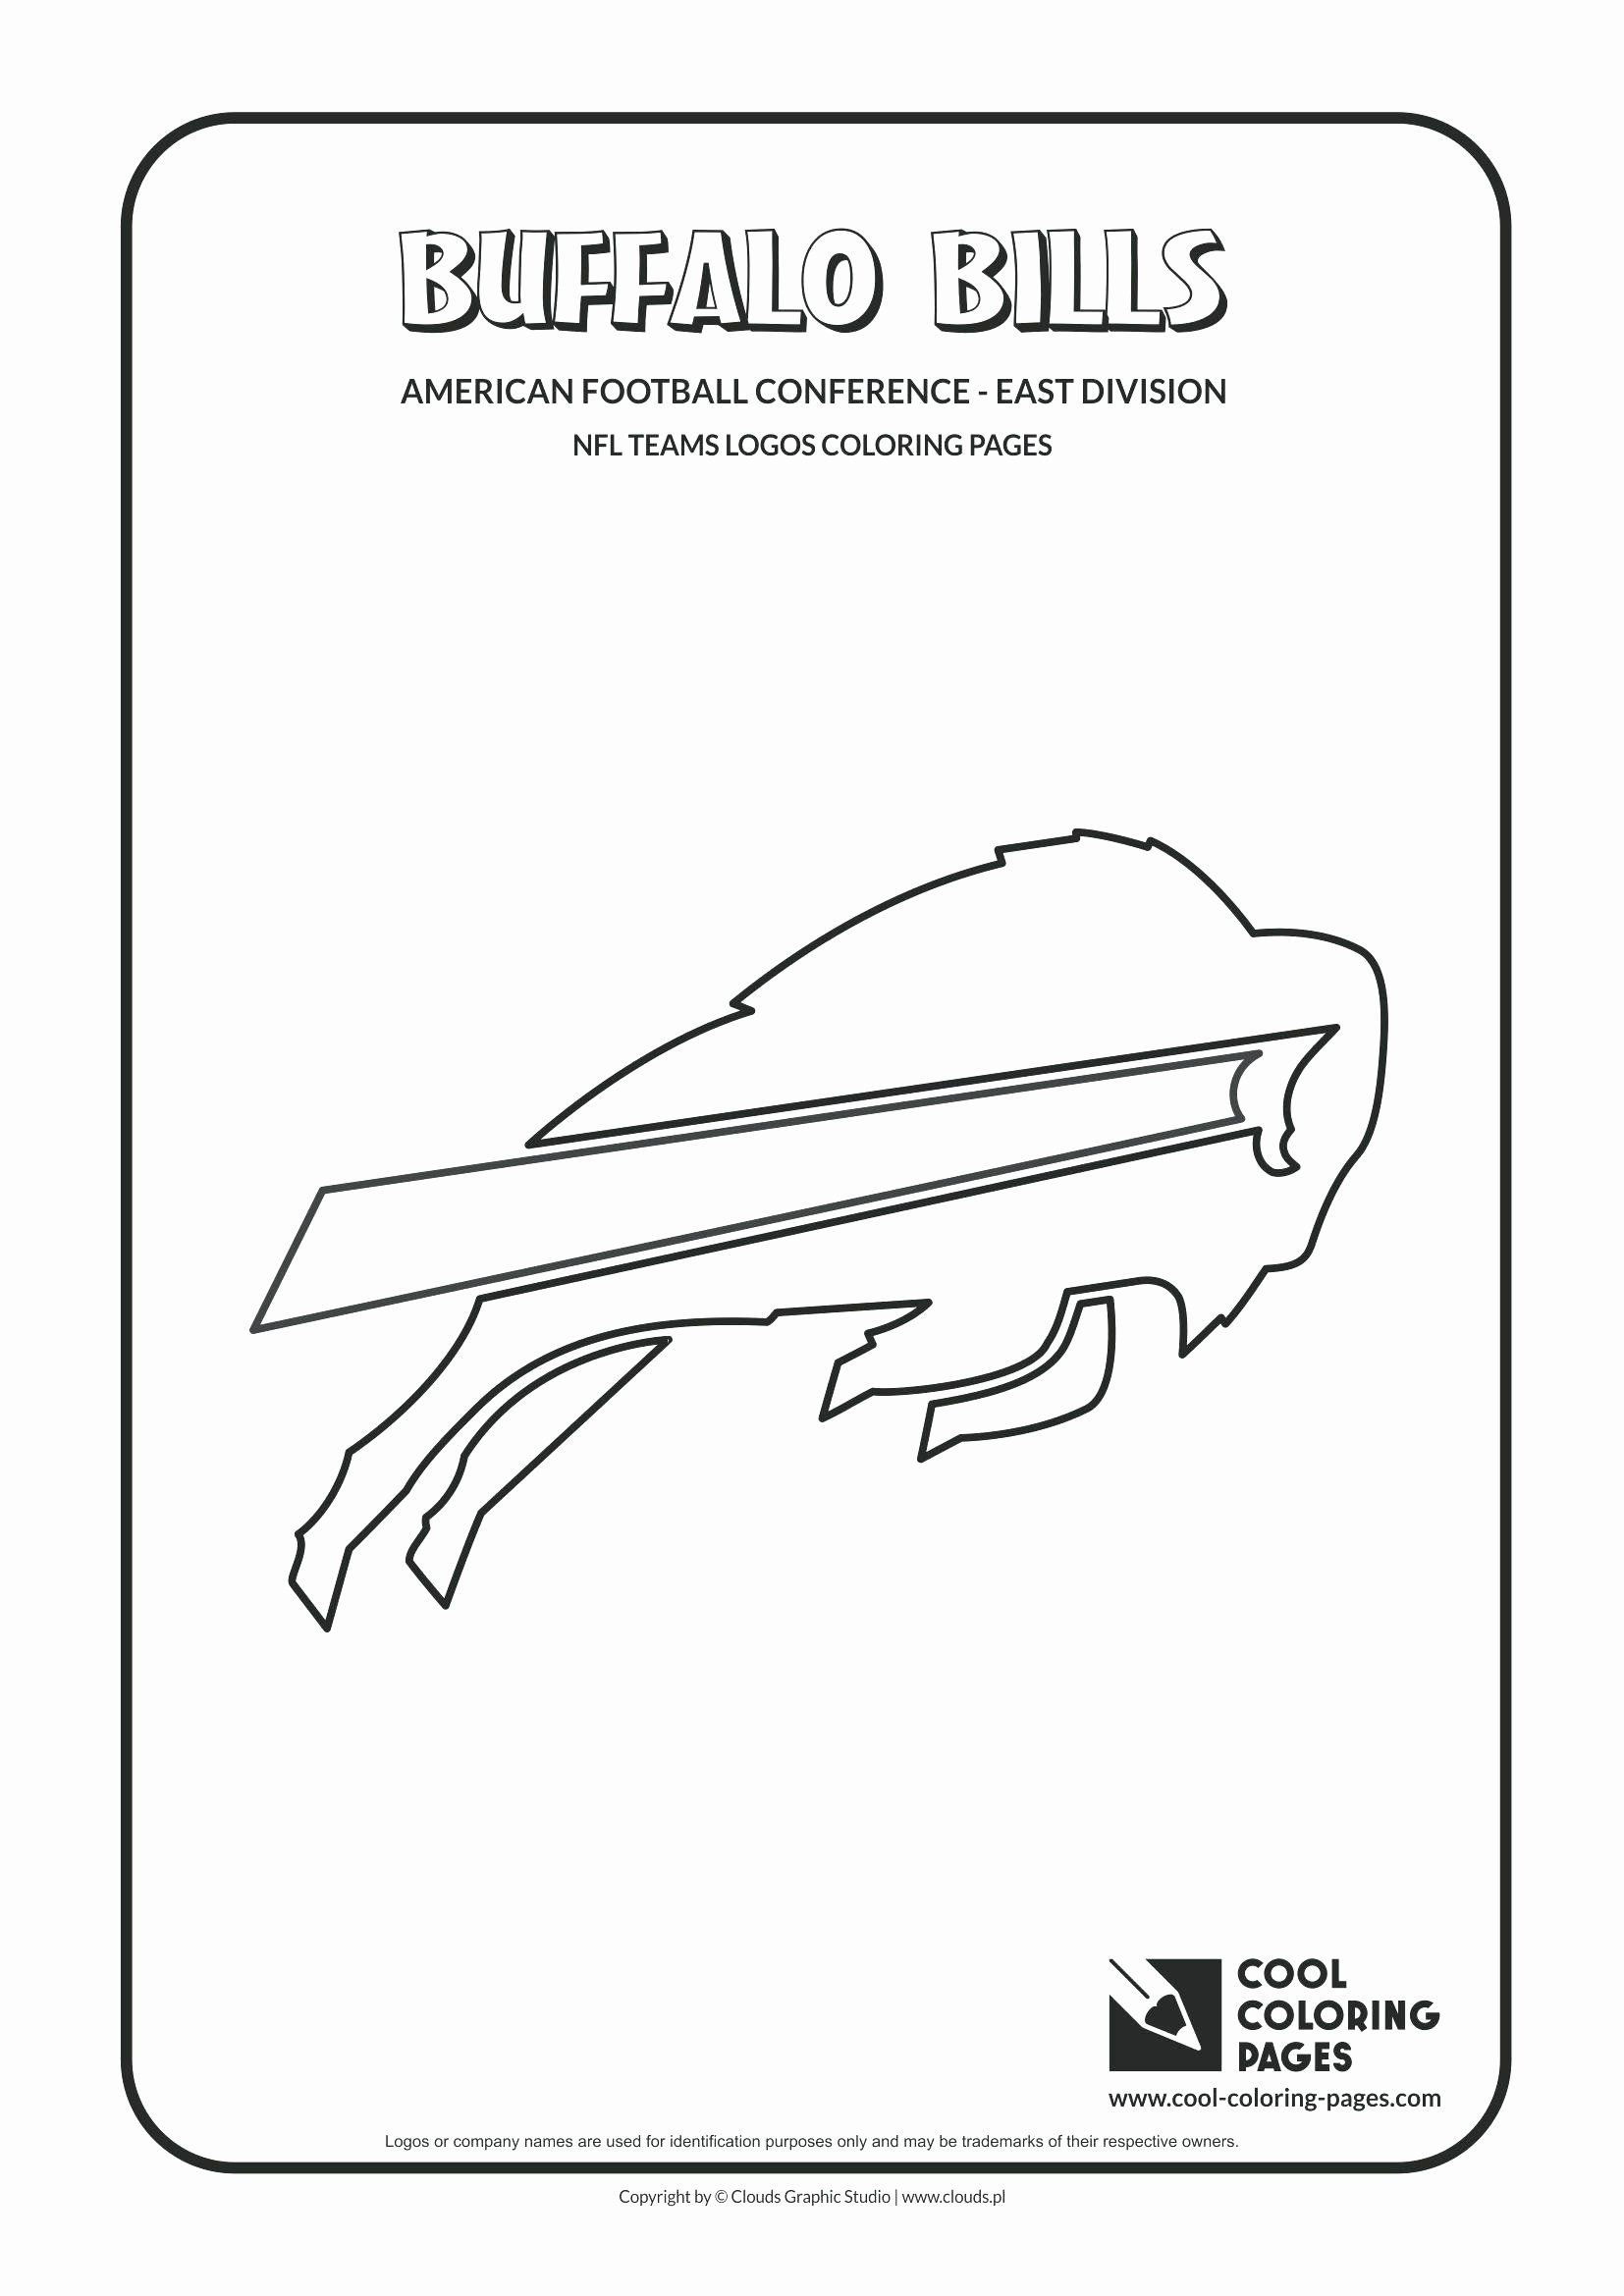 Nfl Logo Coloring Page Awesome Page Coloring Coloring Marvelous Football Pages Nfl In 2020 Nfl Teams Logos Football Coloring Pages Football Team Logos